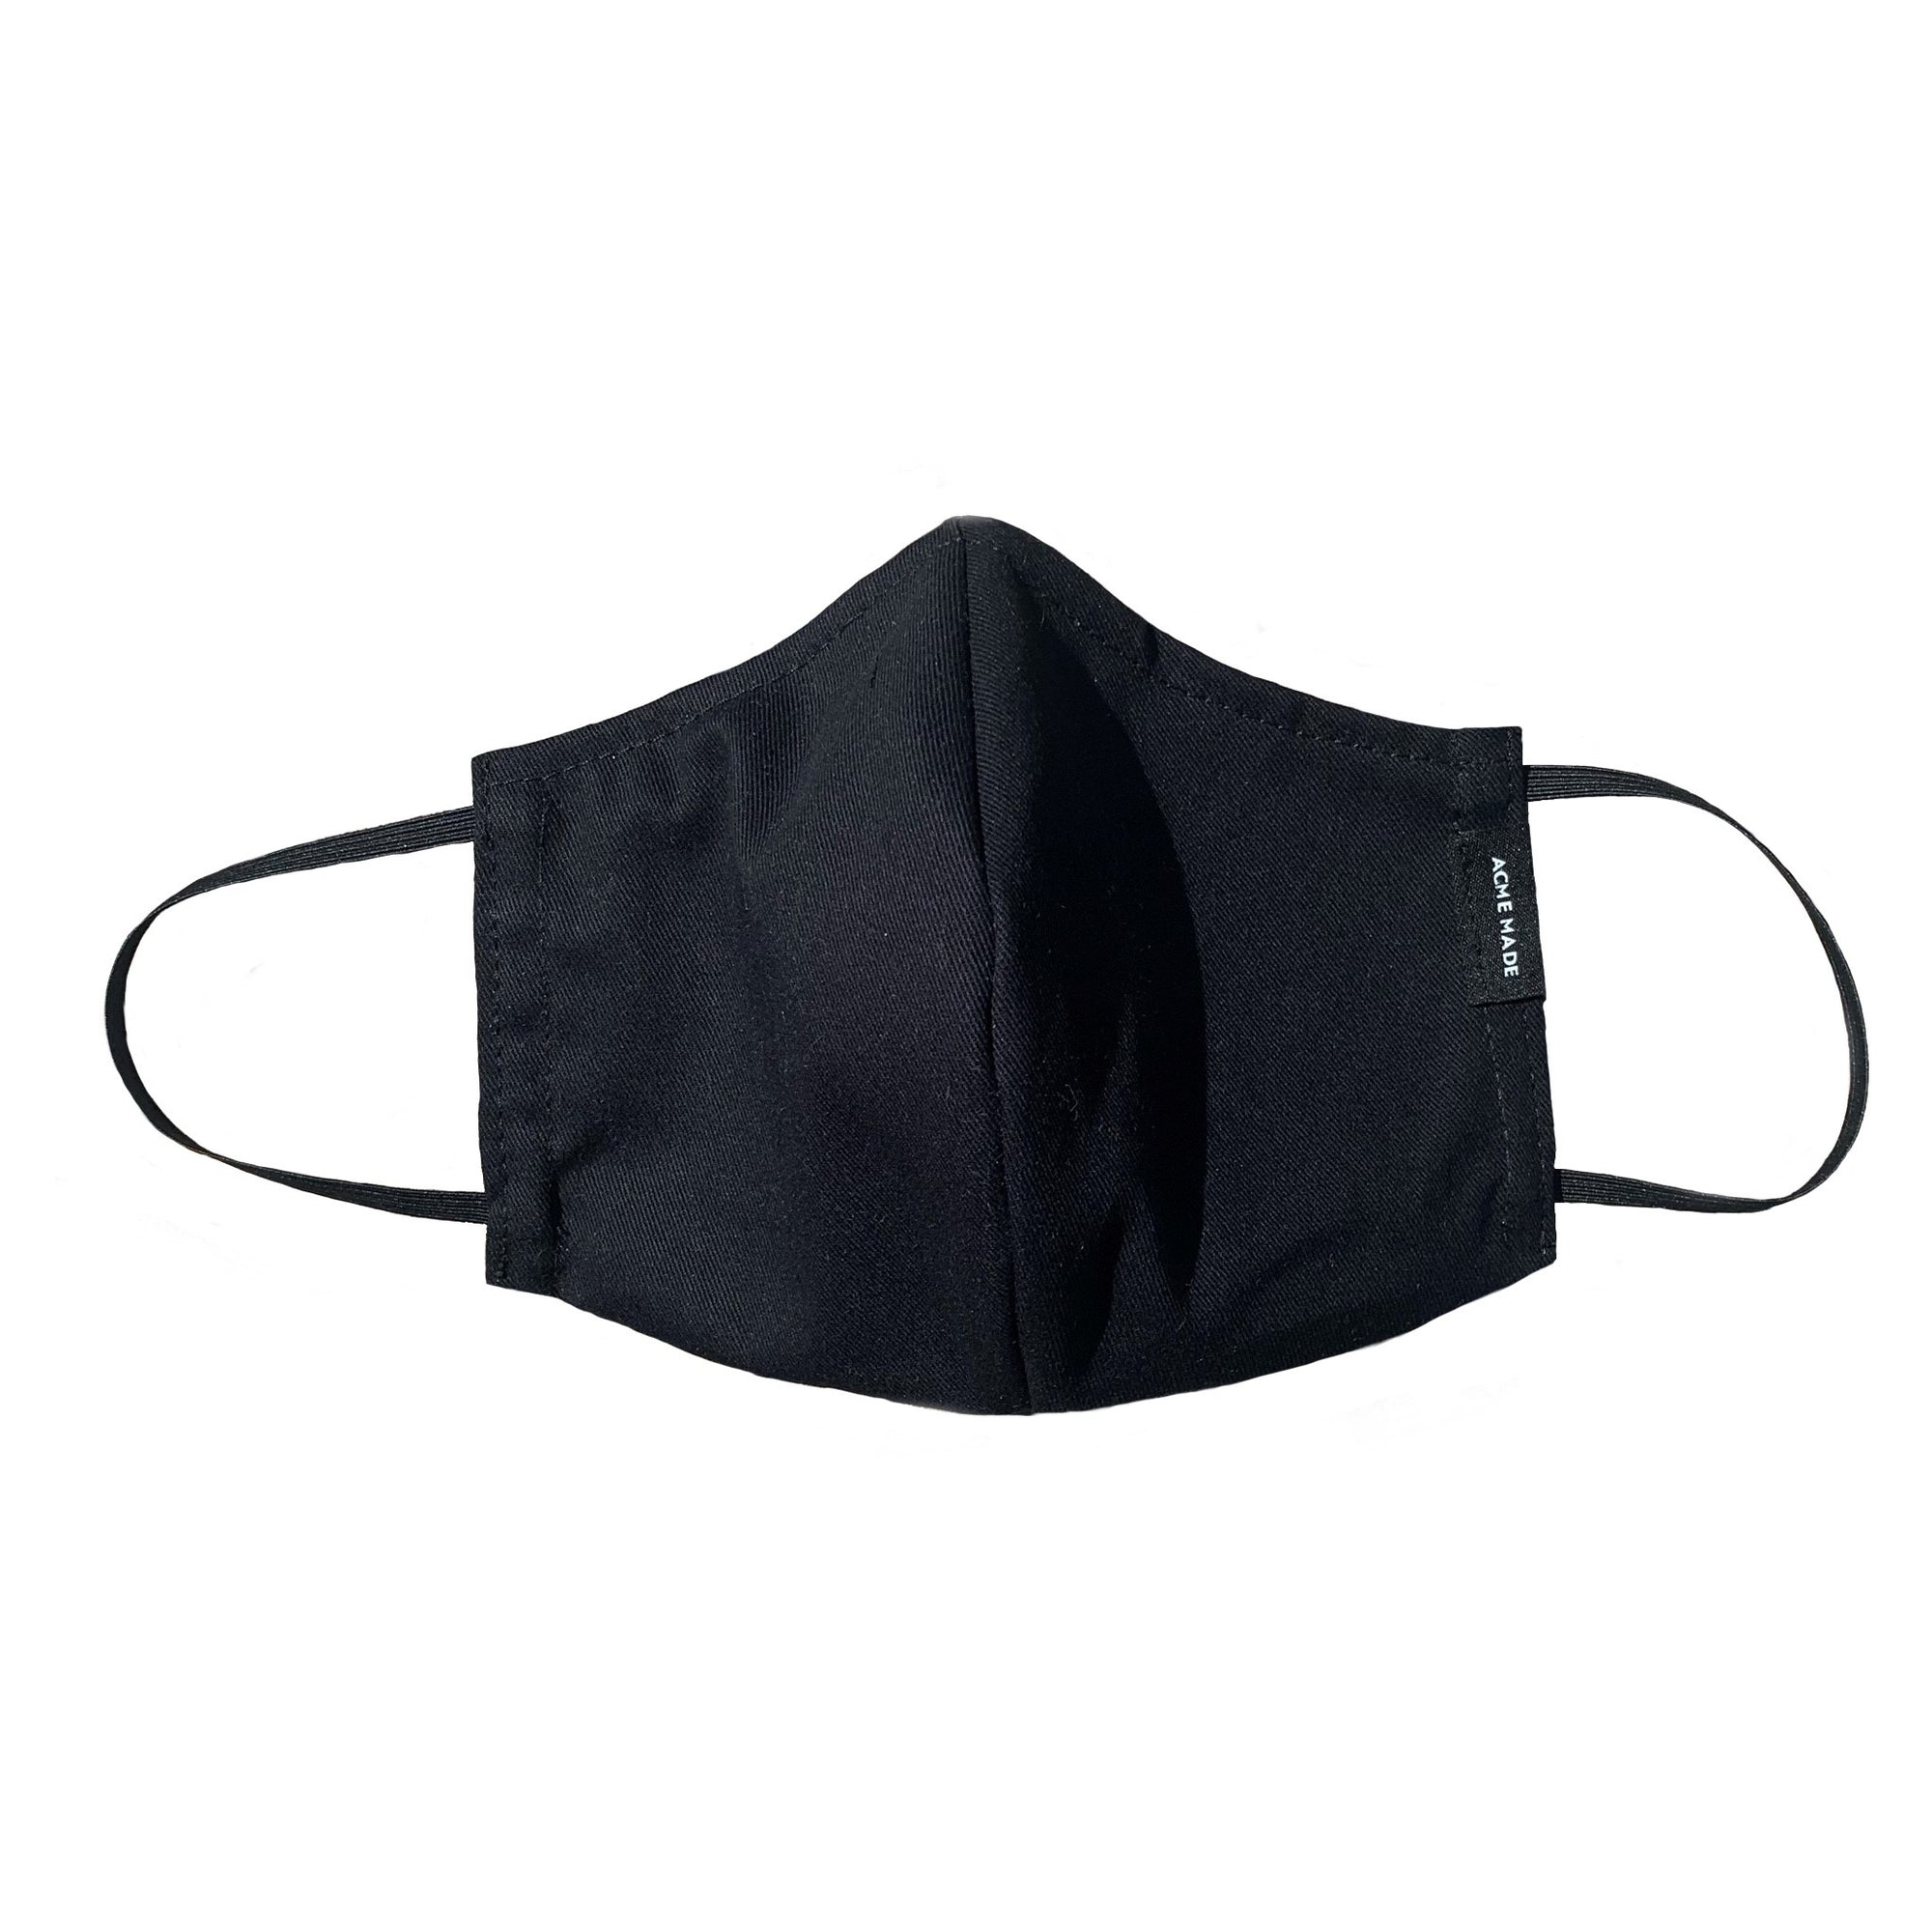 Walker Mask - Black (300 Pack)